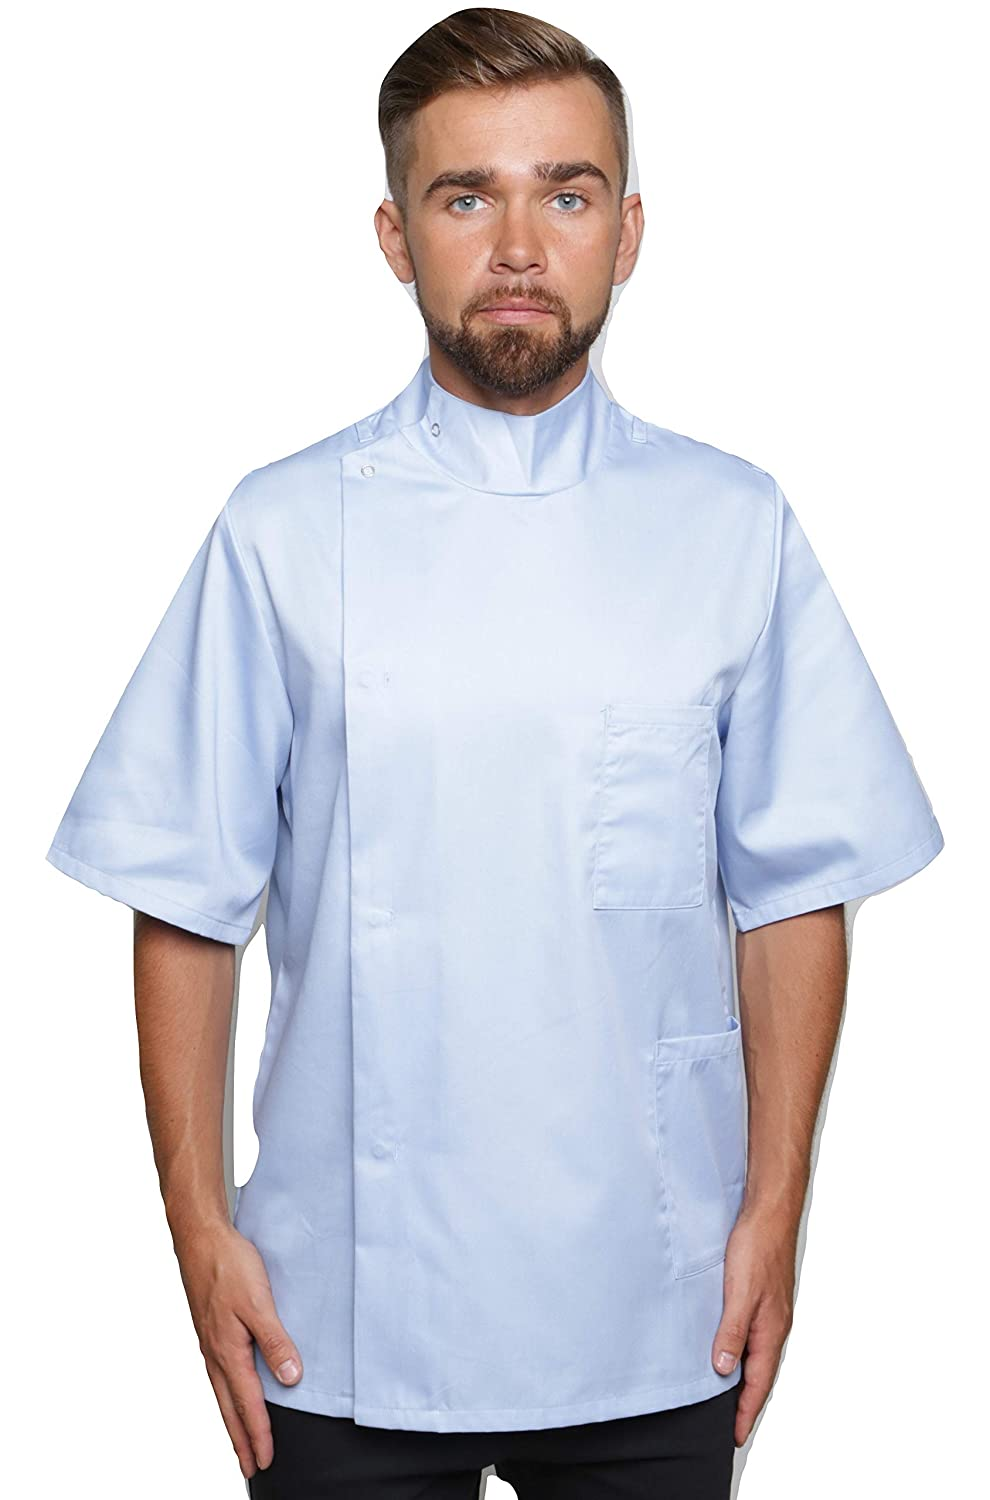 Amazon.com: Mirabella Health and Beauty Clothing Mens Dentist Top: Clothing